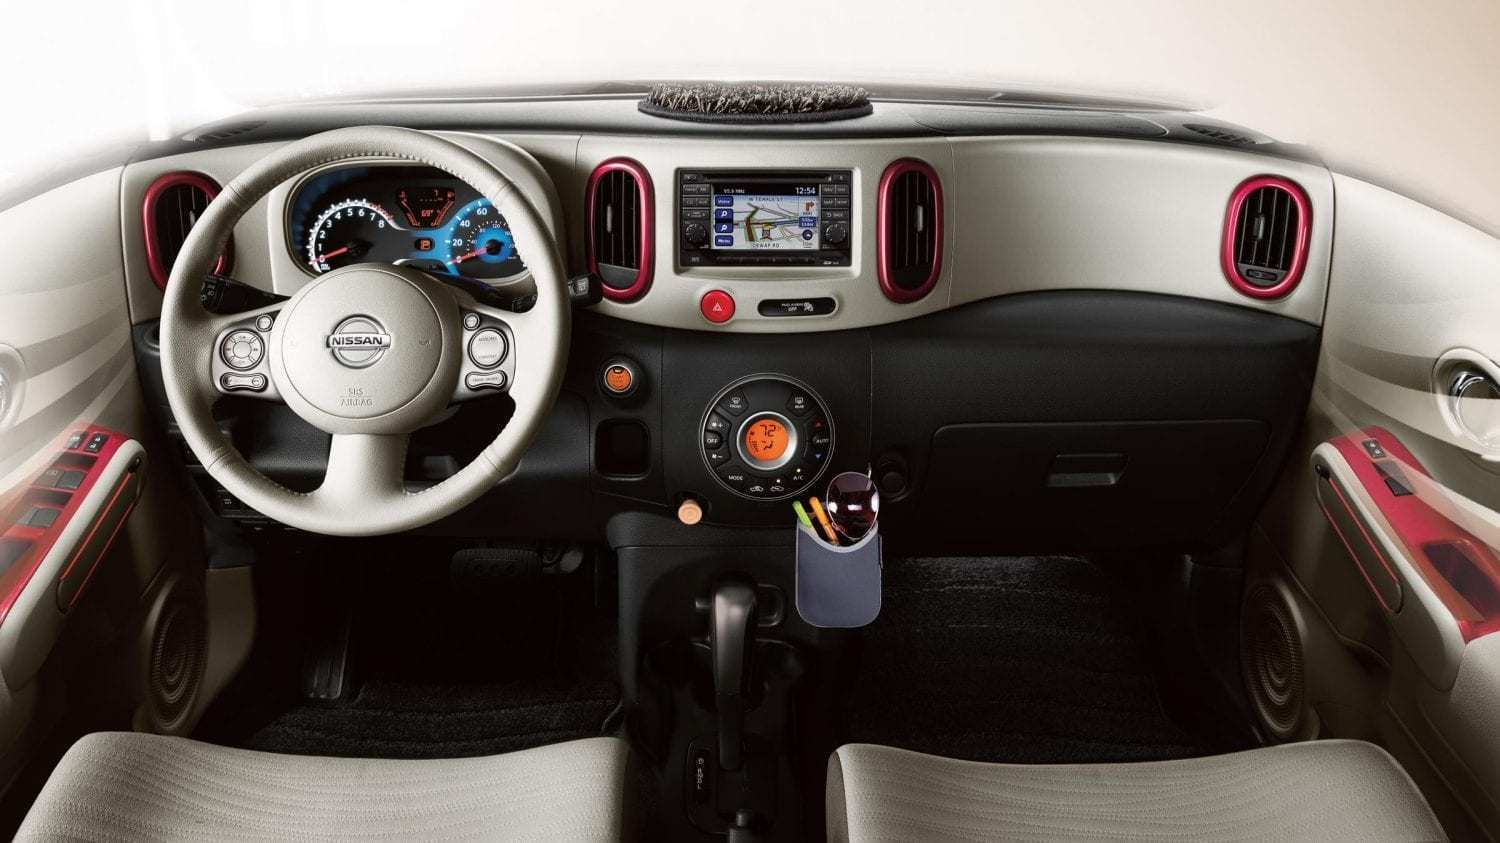 29 Gallery of 2019 Nissan Cube Interior with 2019 Nissan Cube